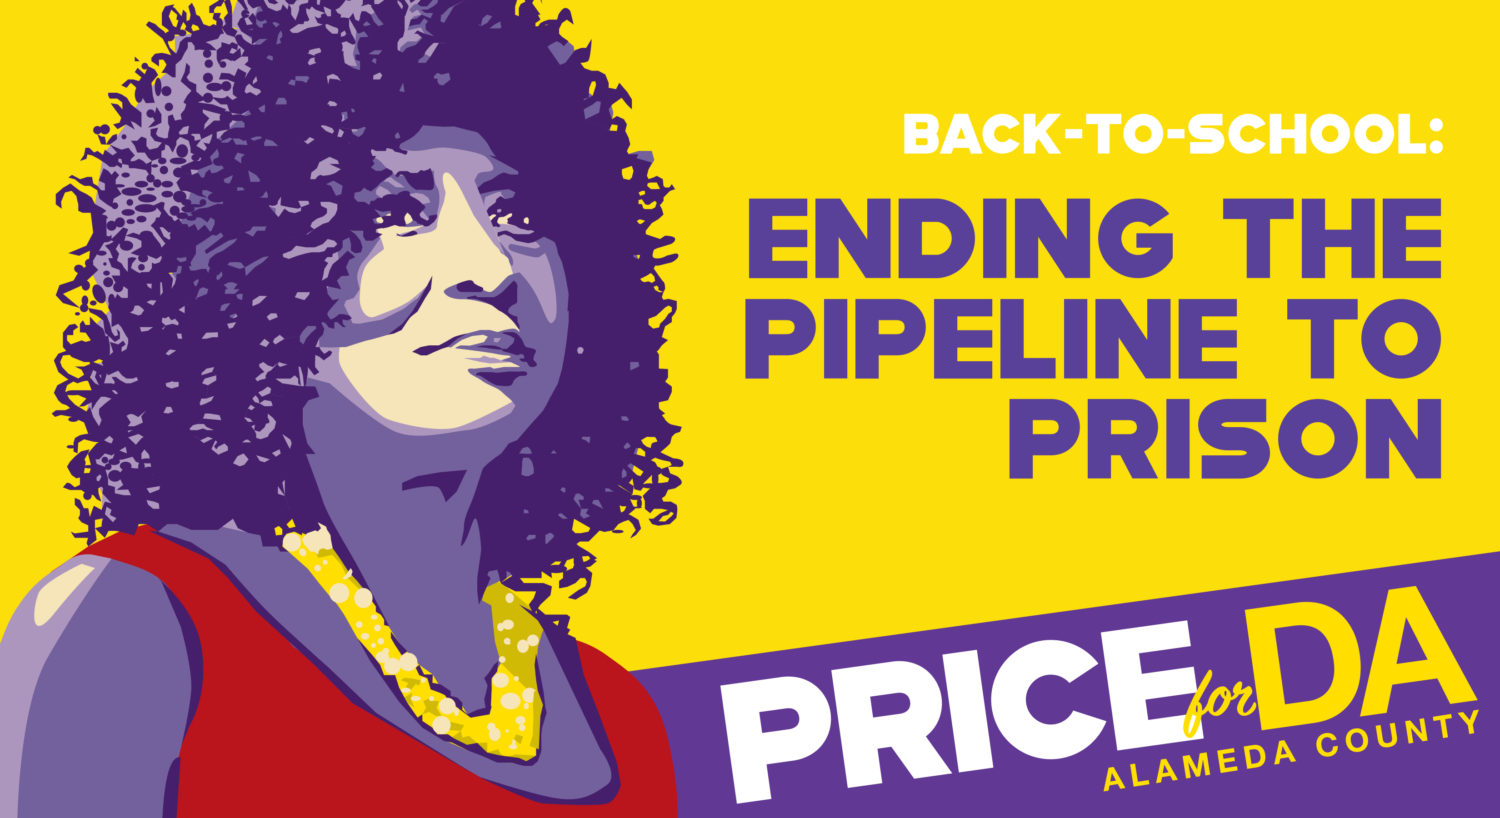 Pamela Price for Alameda County District Attorney - Back to School: Ending the Pipeline to Prison